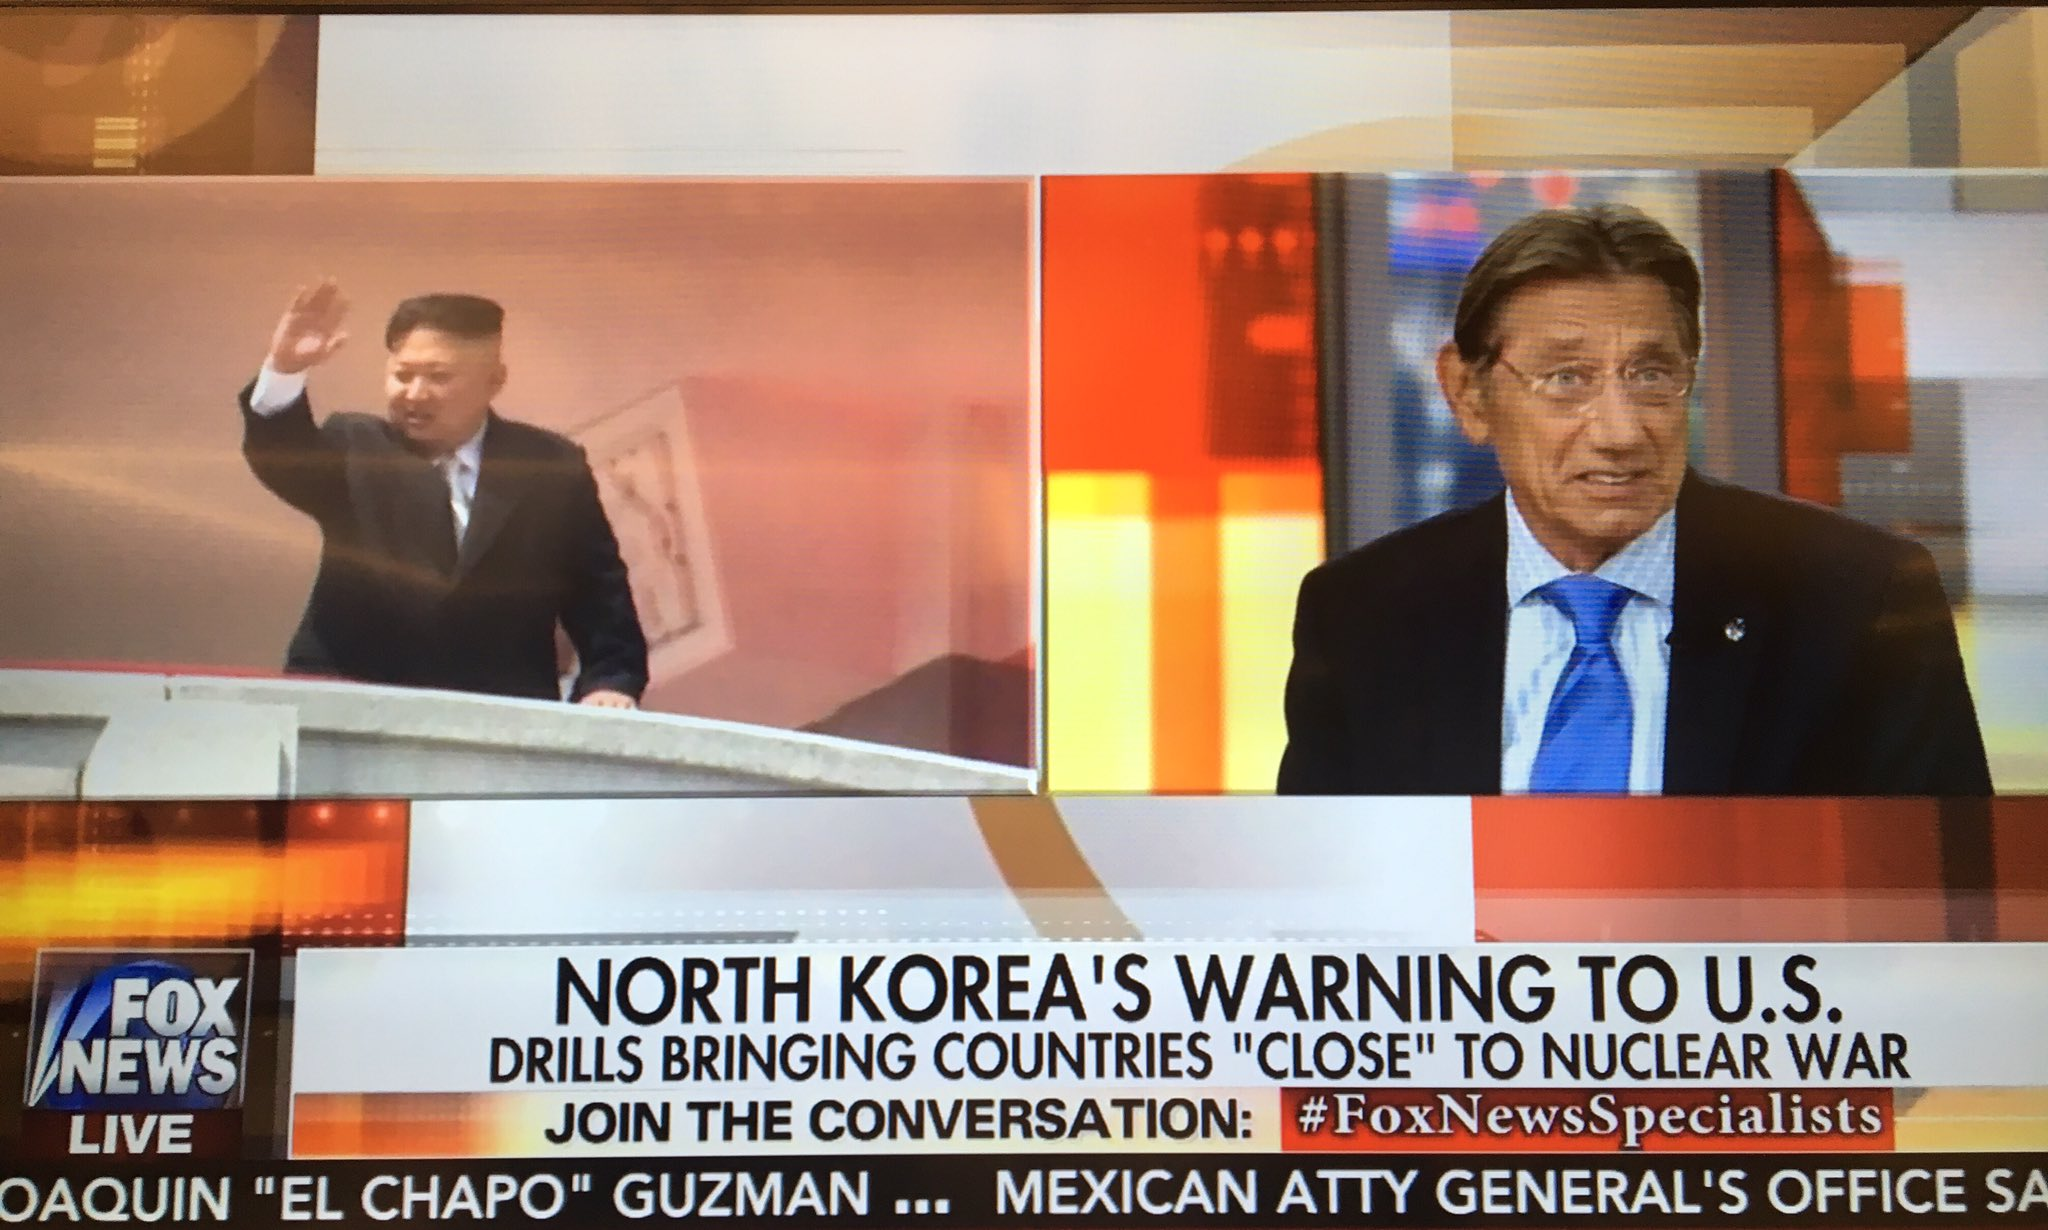 Who better than @RealJoeNamath to discuss the threat of nuclear war with North Korea? #FoxNewsSpecialists https://t.co/nKvjsJs2xt